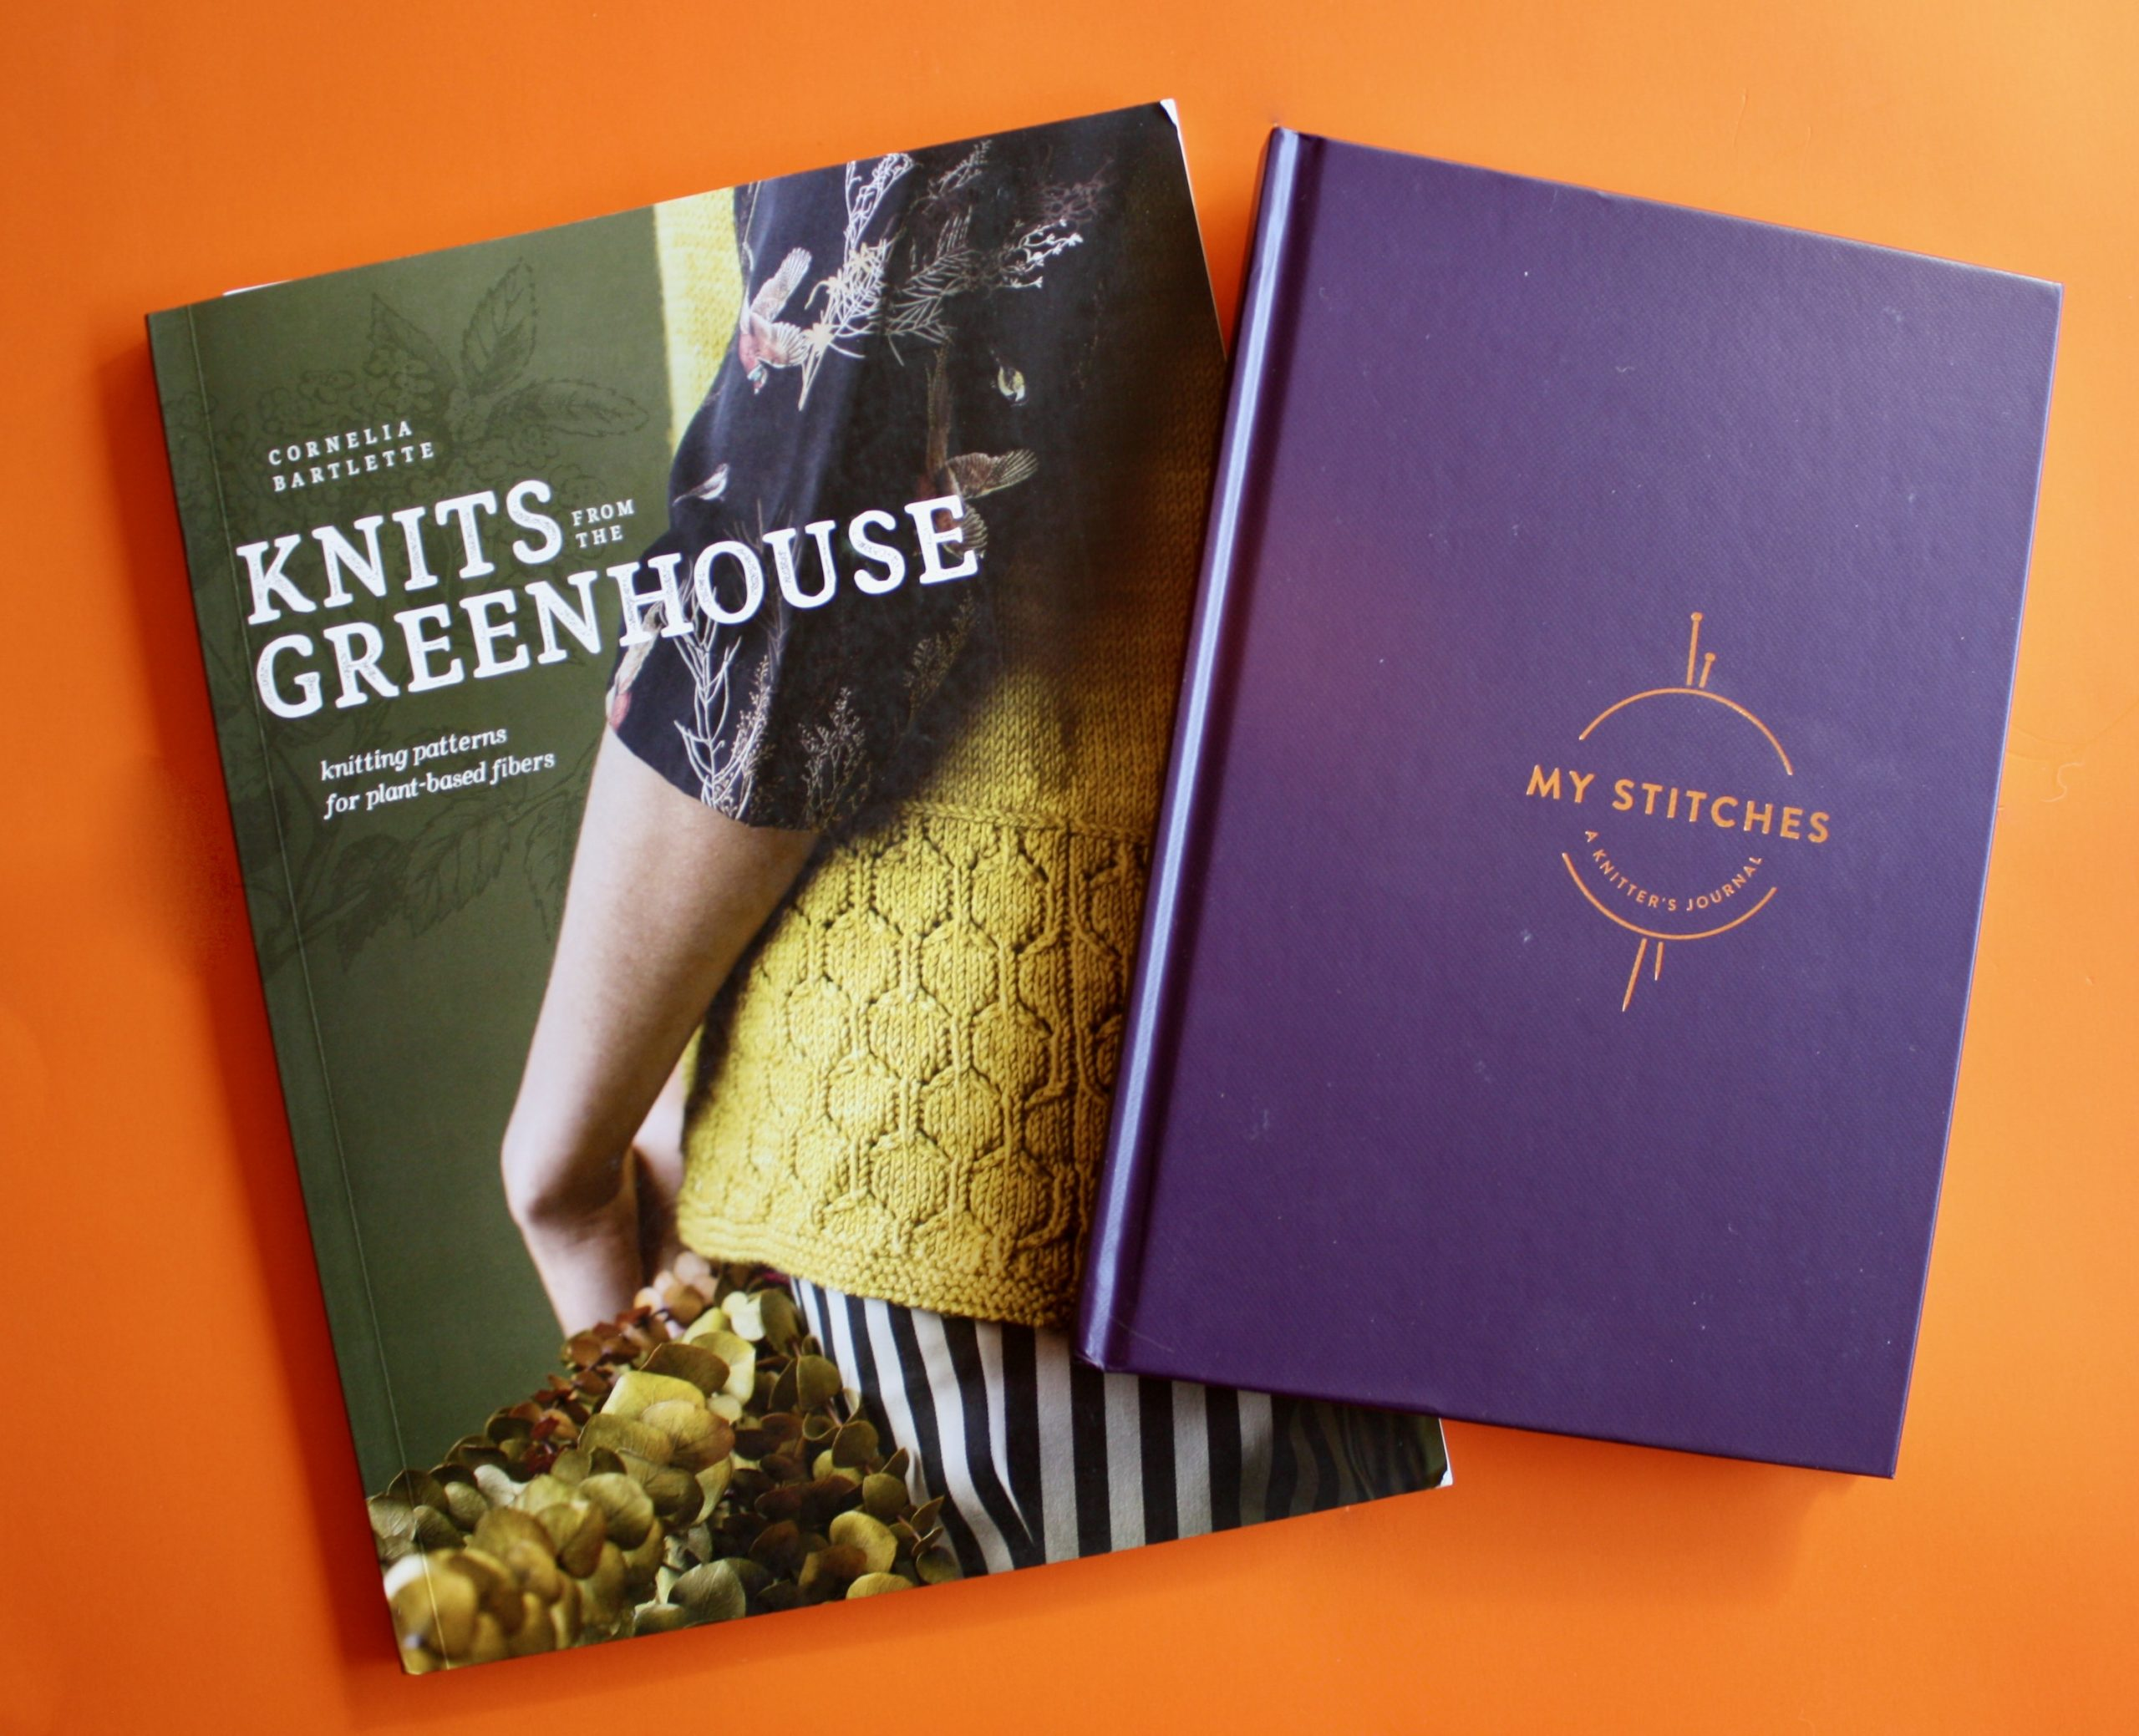 Third Book Review Knits From The Greenhouse and My Stitches